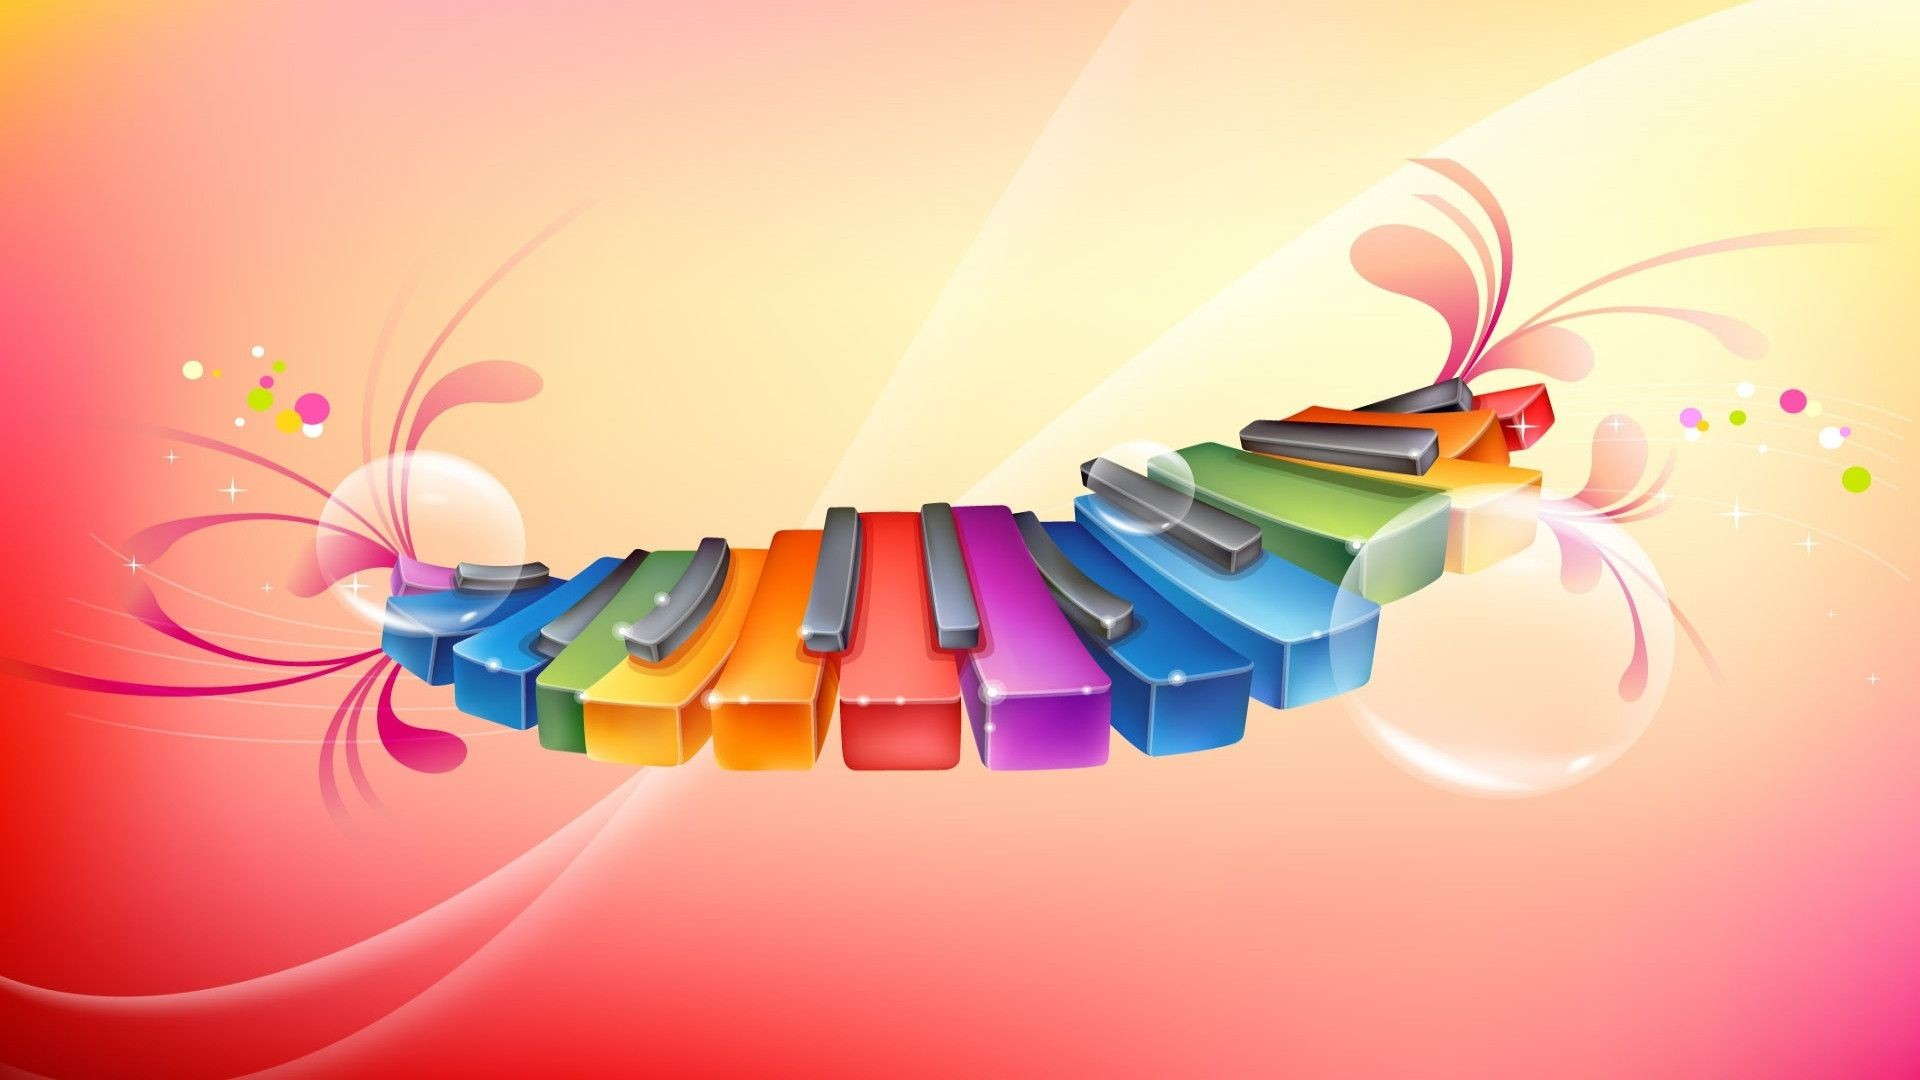 1920x1080 Colorful Music Desktop Backgrounds, wallpaper, Colorful Music .